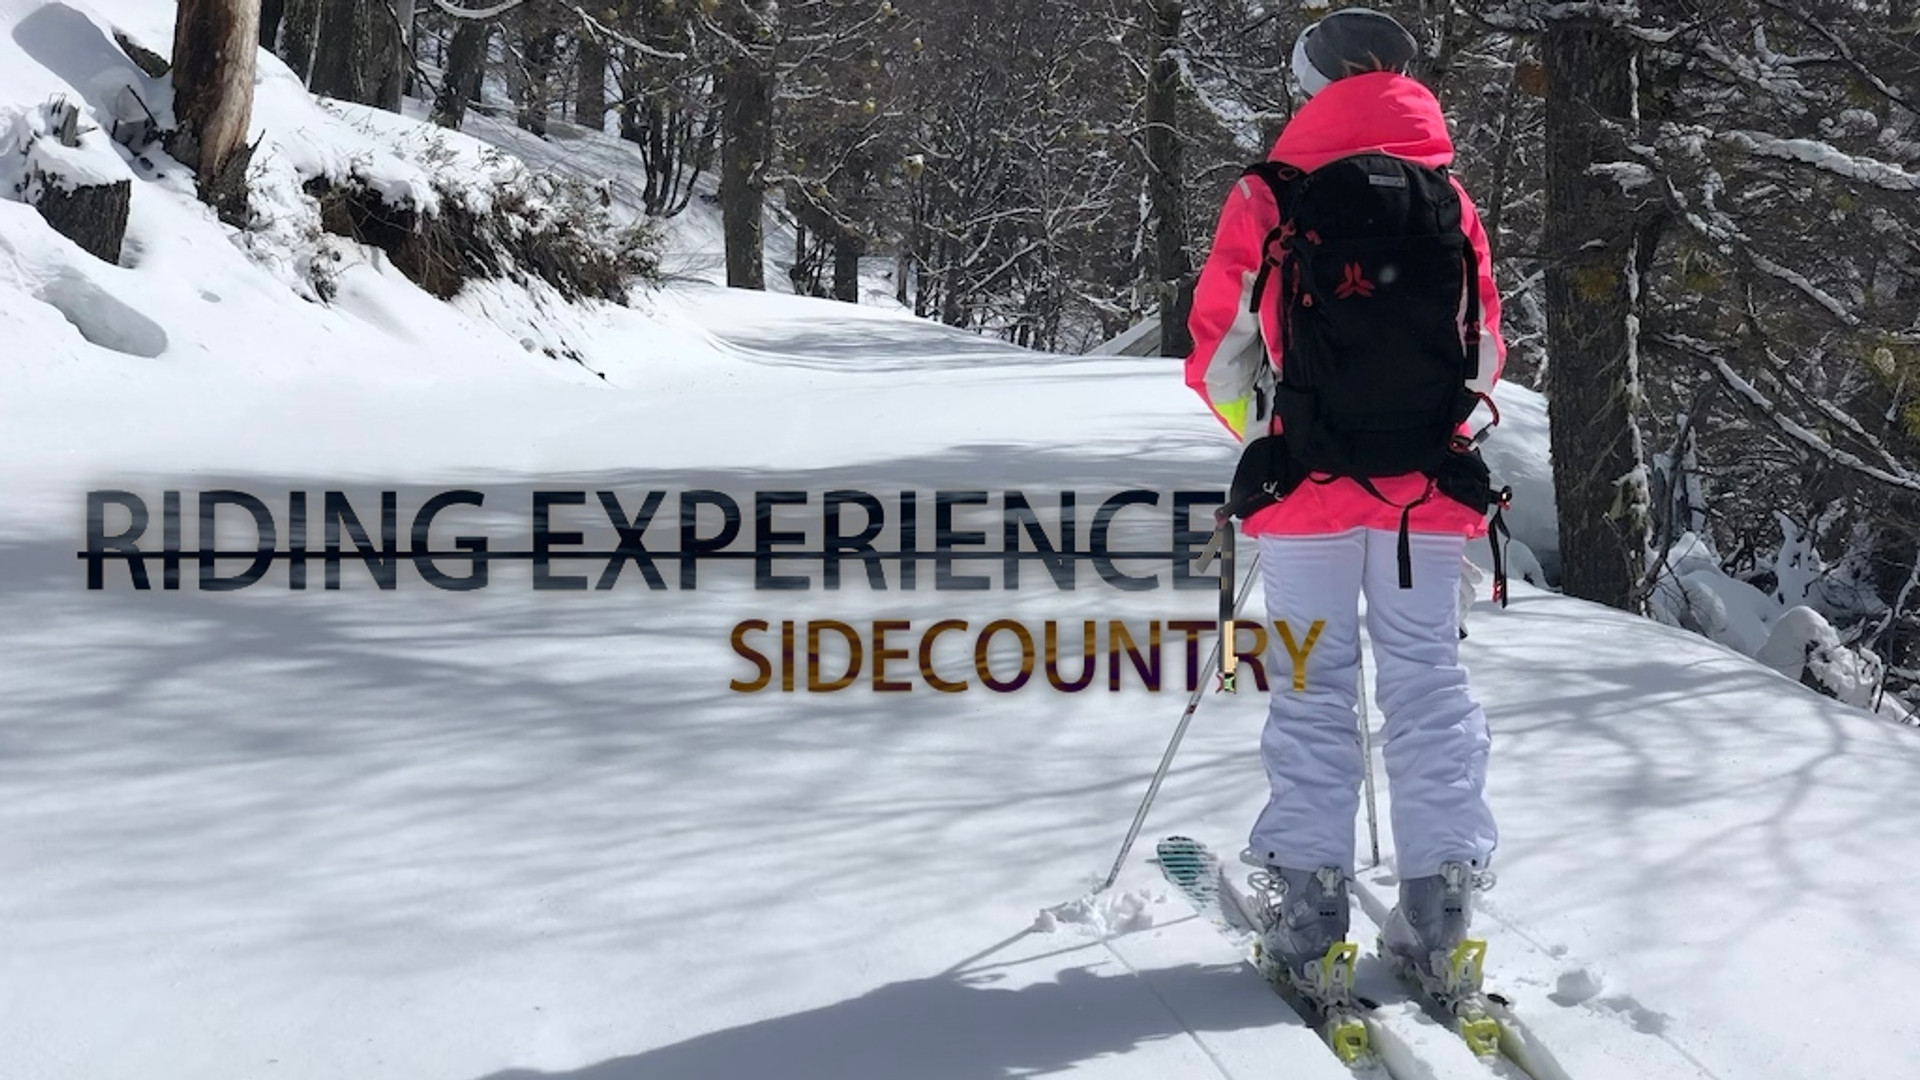 Riding Experiences - Sidecountry skiing - Cerro Catedral